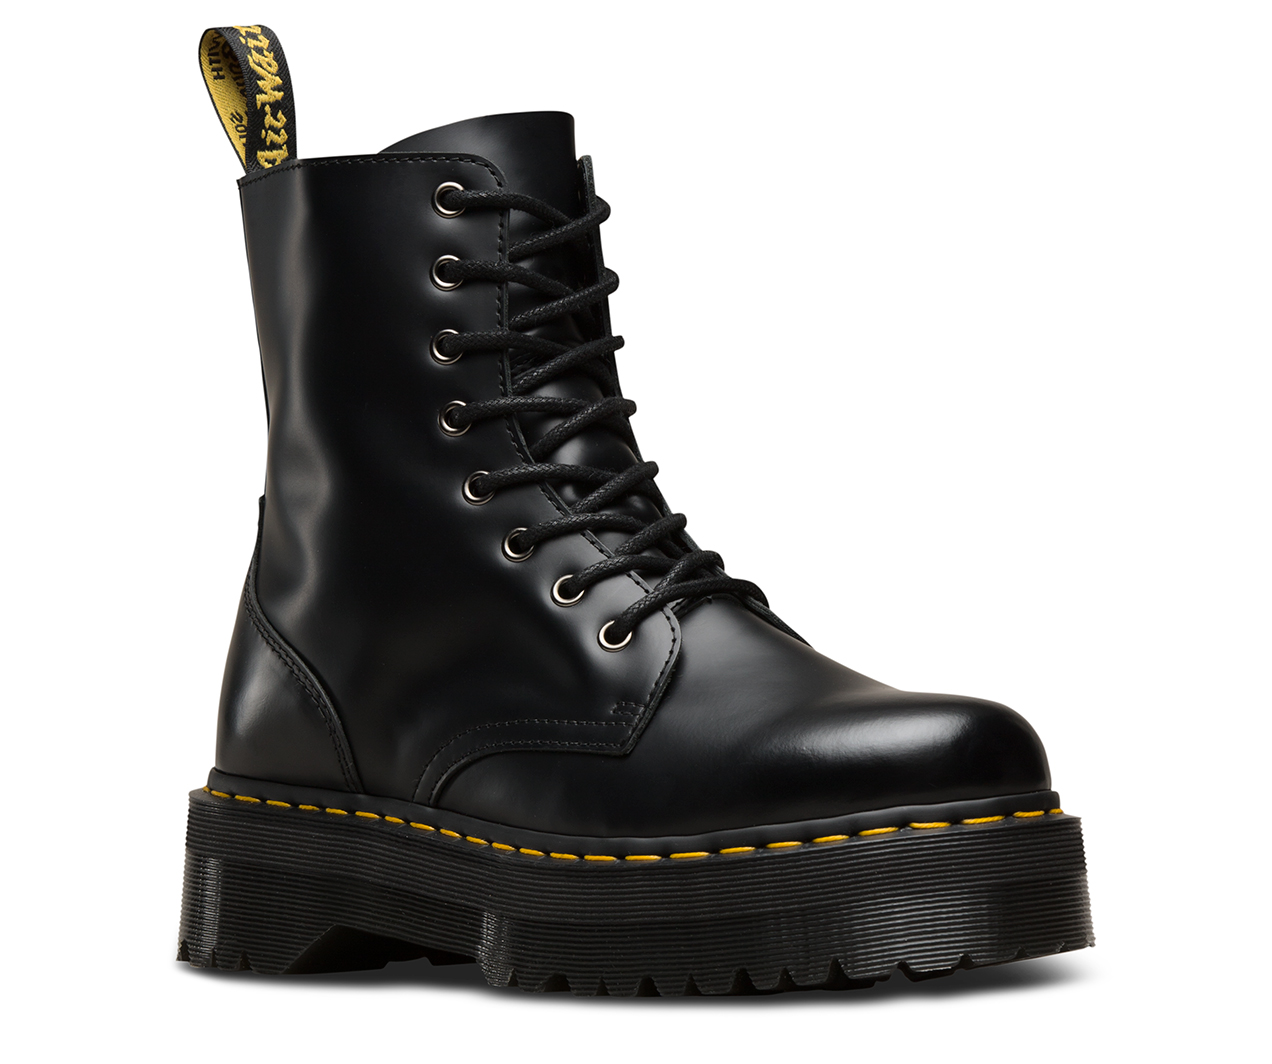 Men's Ankle Boots/Dr Martens Jadon 8Eye Boots Black Polished Smooth